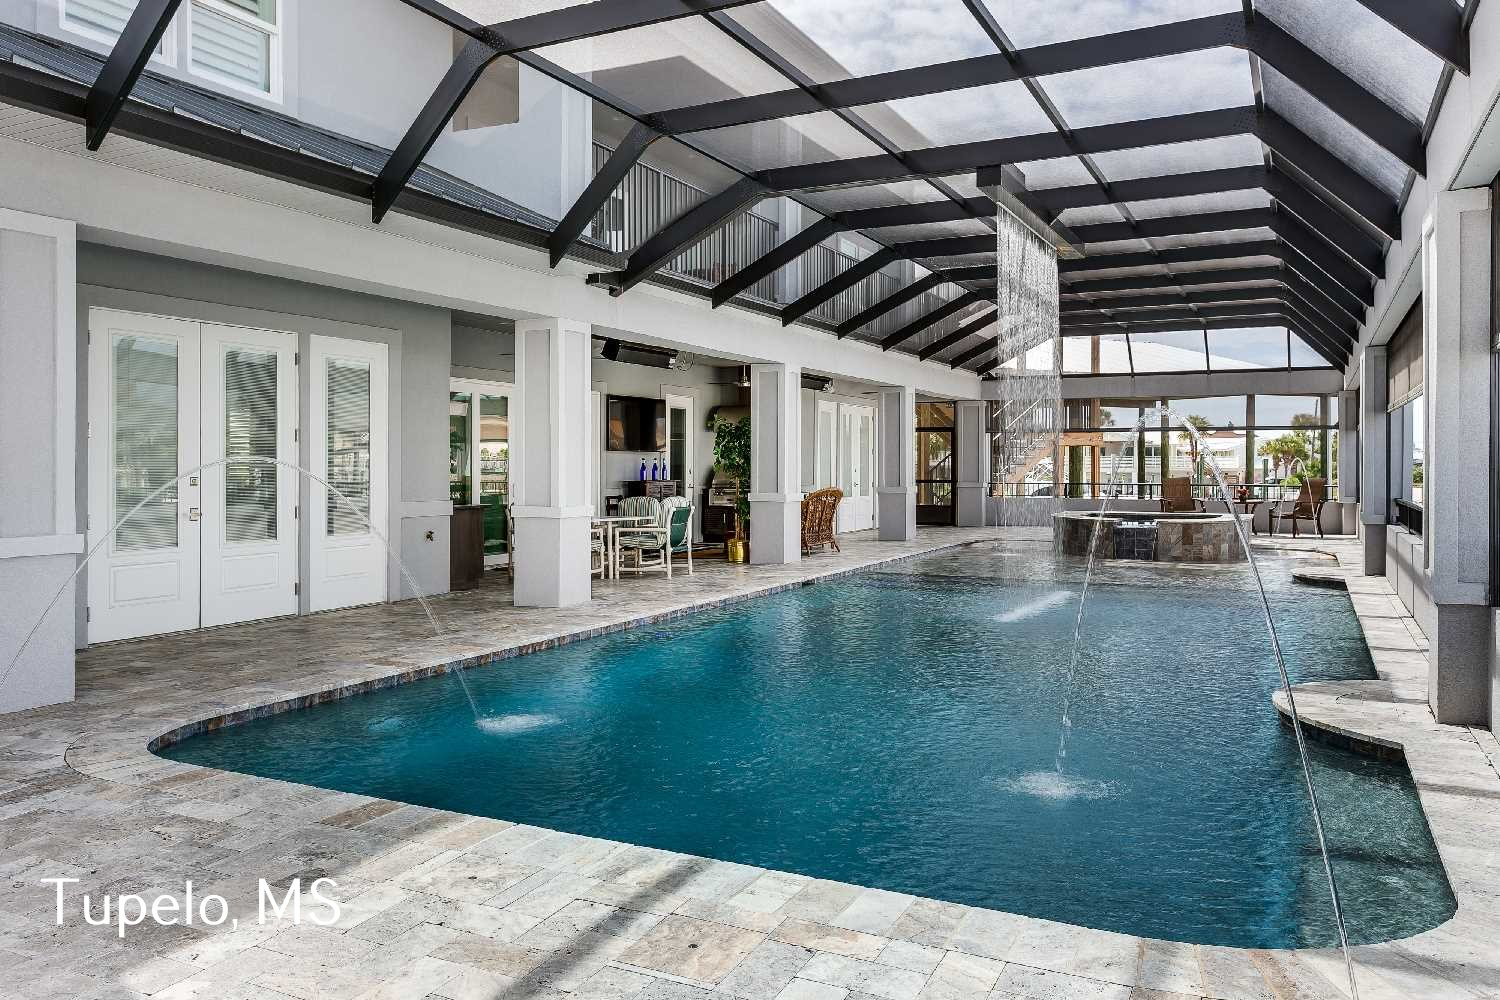 Tupelo, MS - Southern Poolscapes